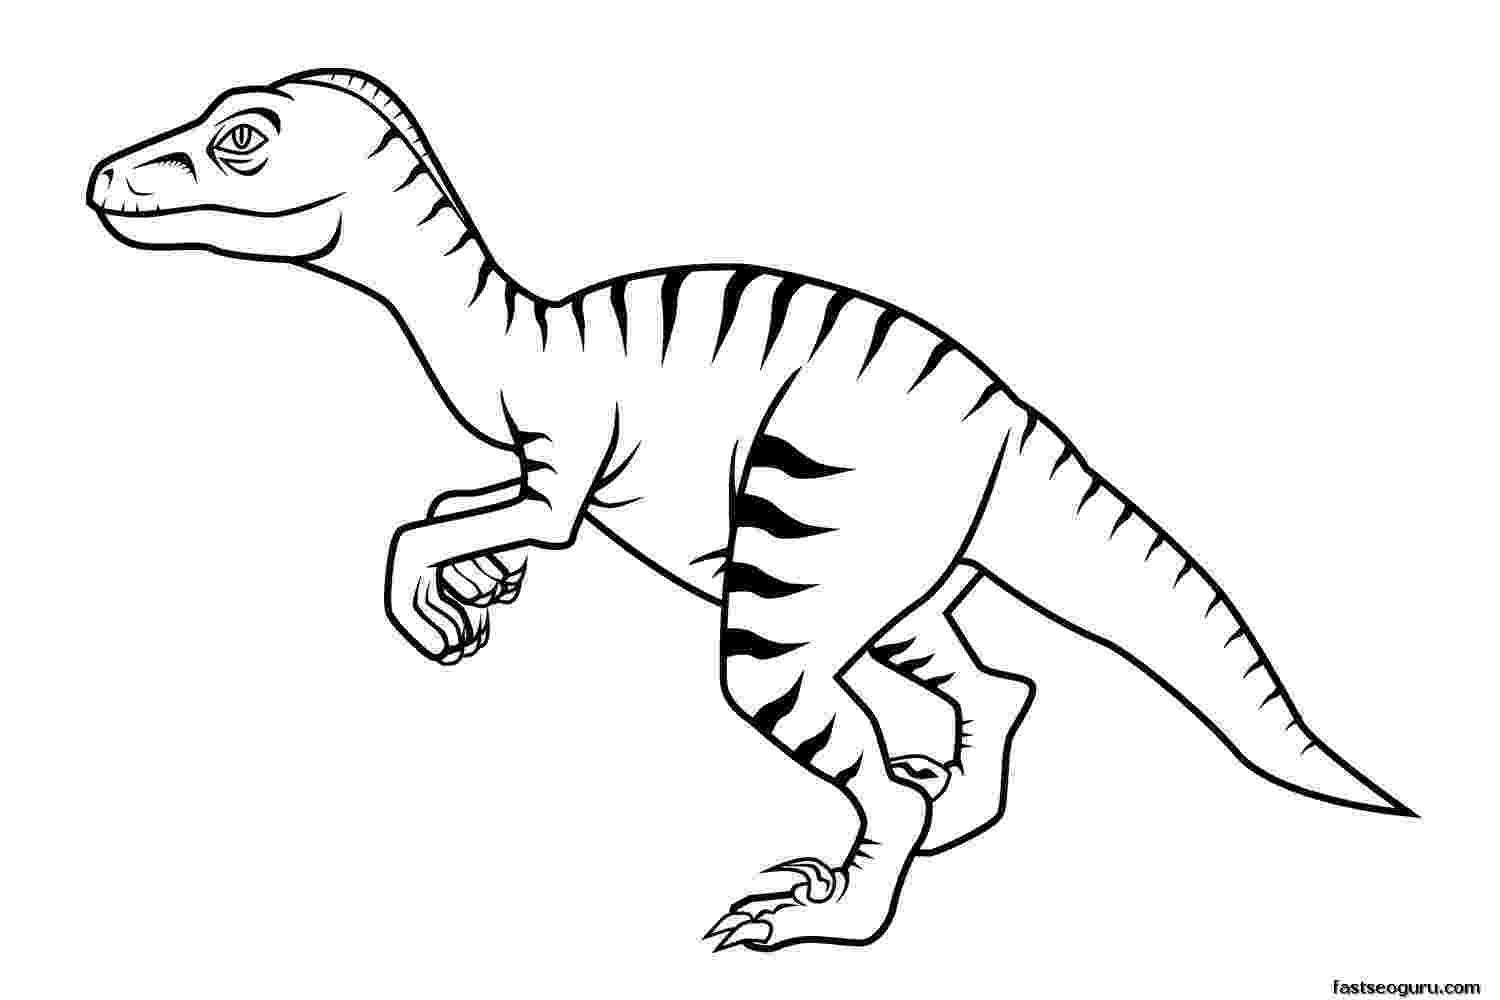 dinosaurs for coloring cute little dinosaur coloring page free printable dinosaurs for coloring